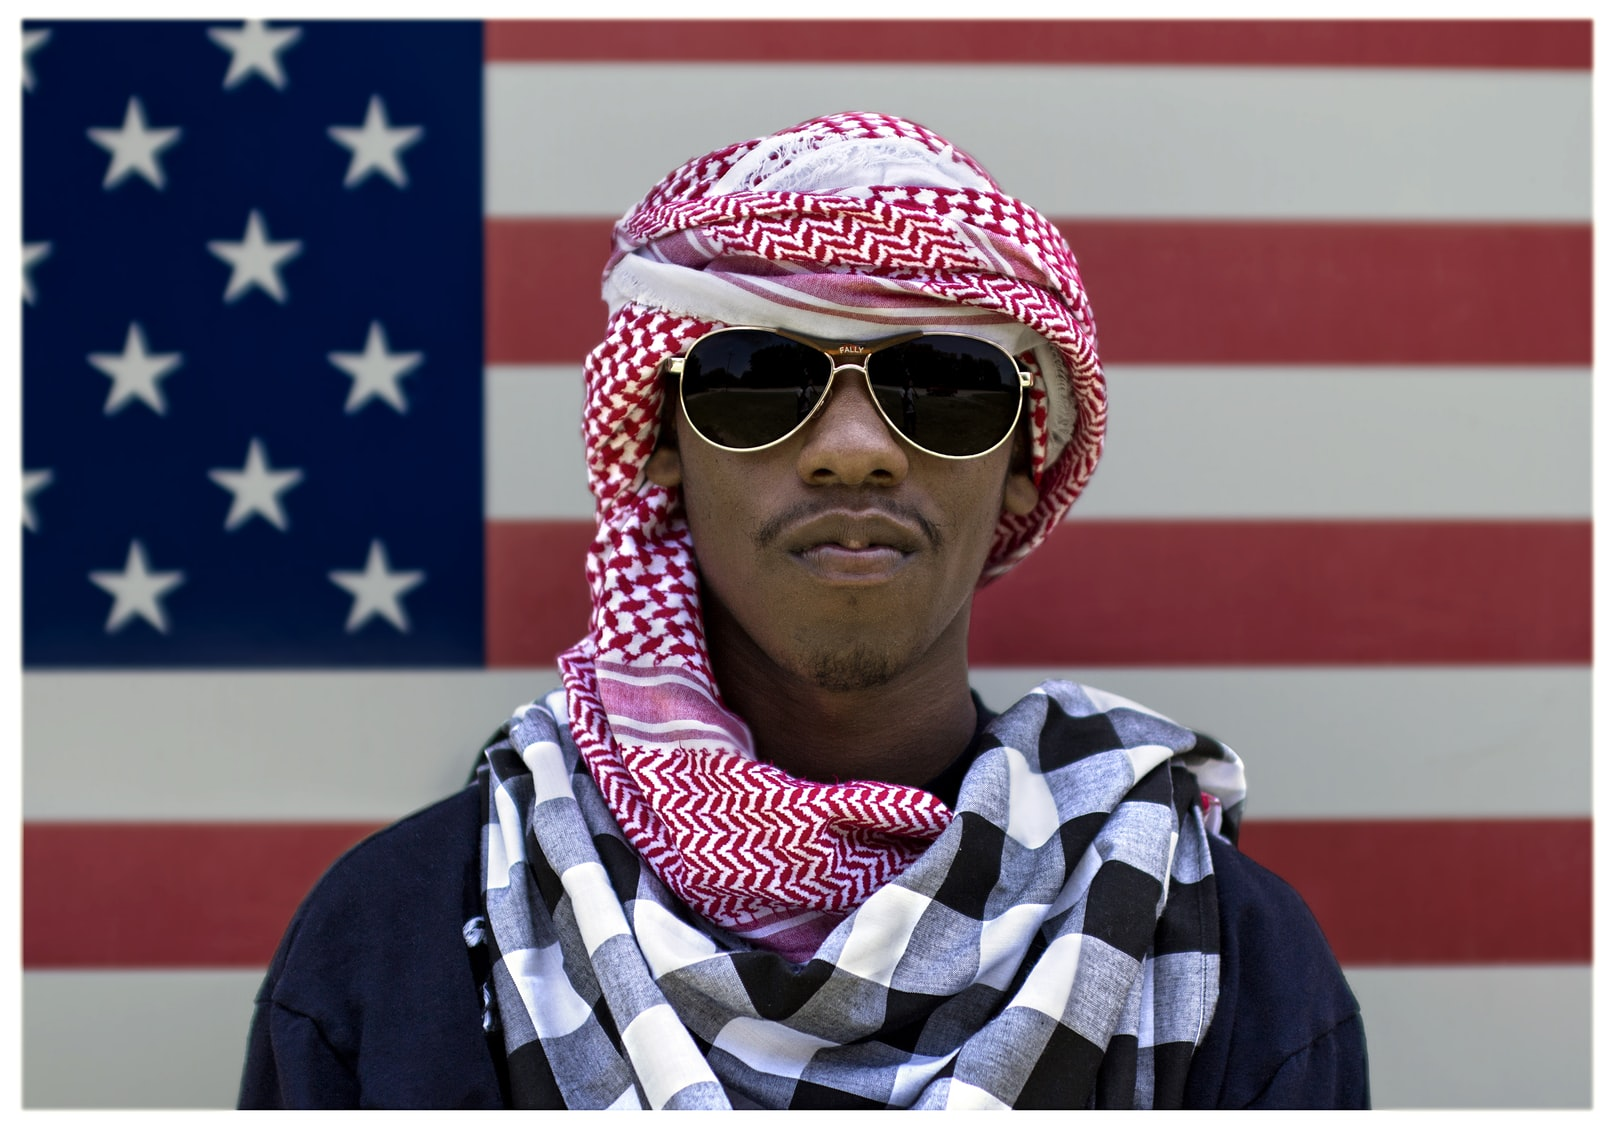 Black man wearing a keffiyeh and sunglasses in front of American flag